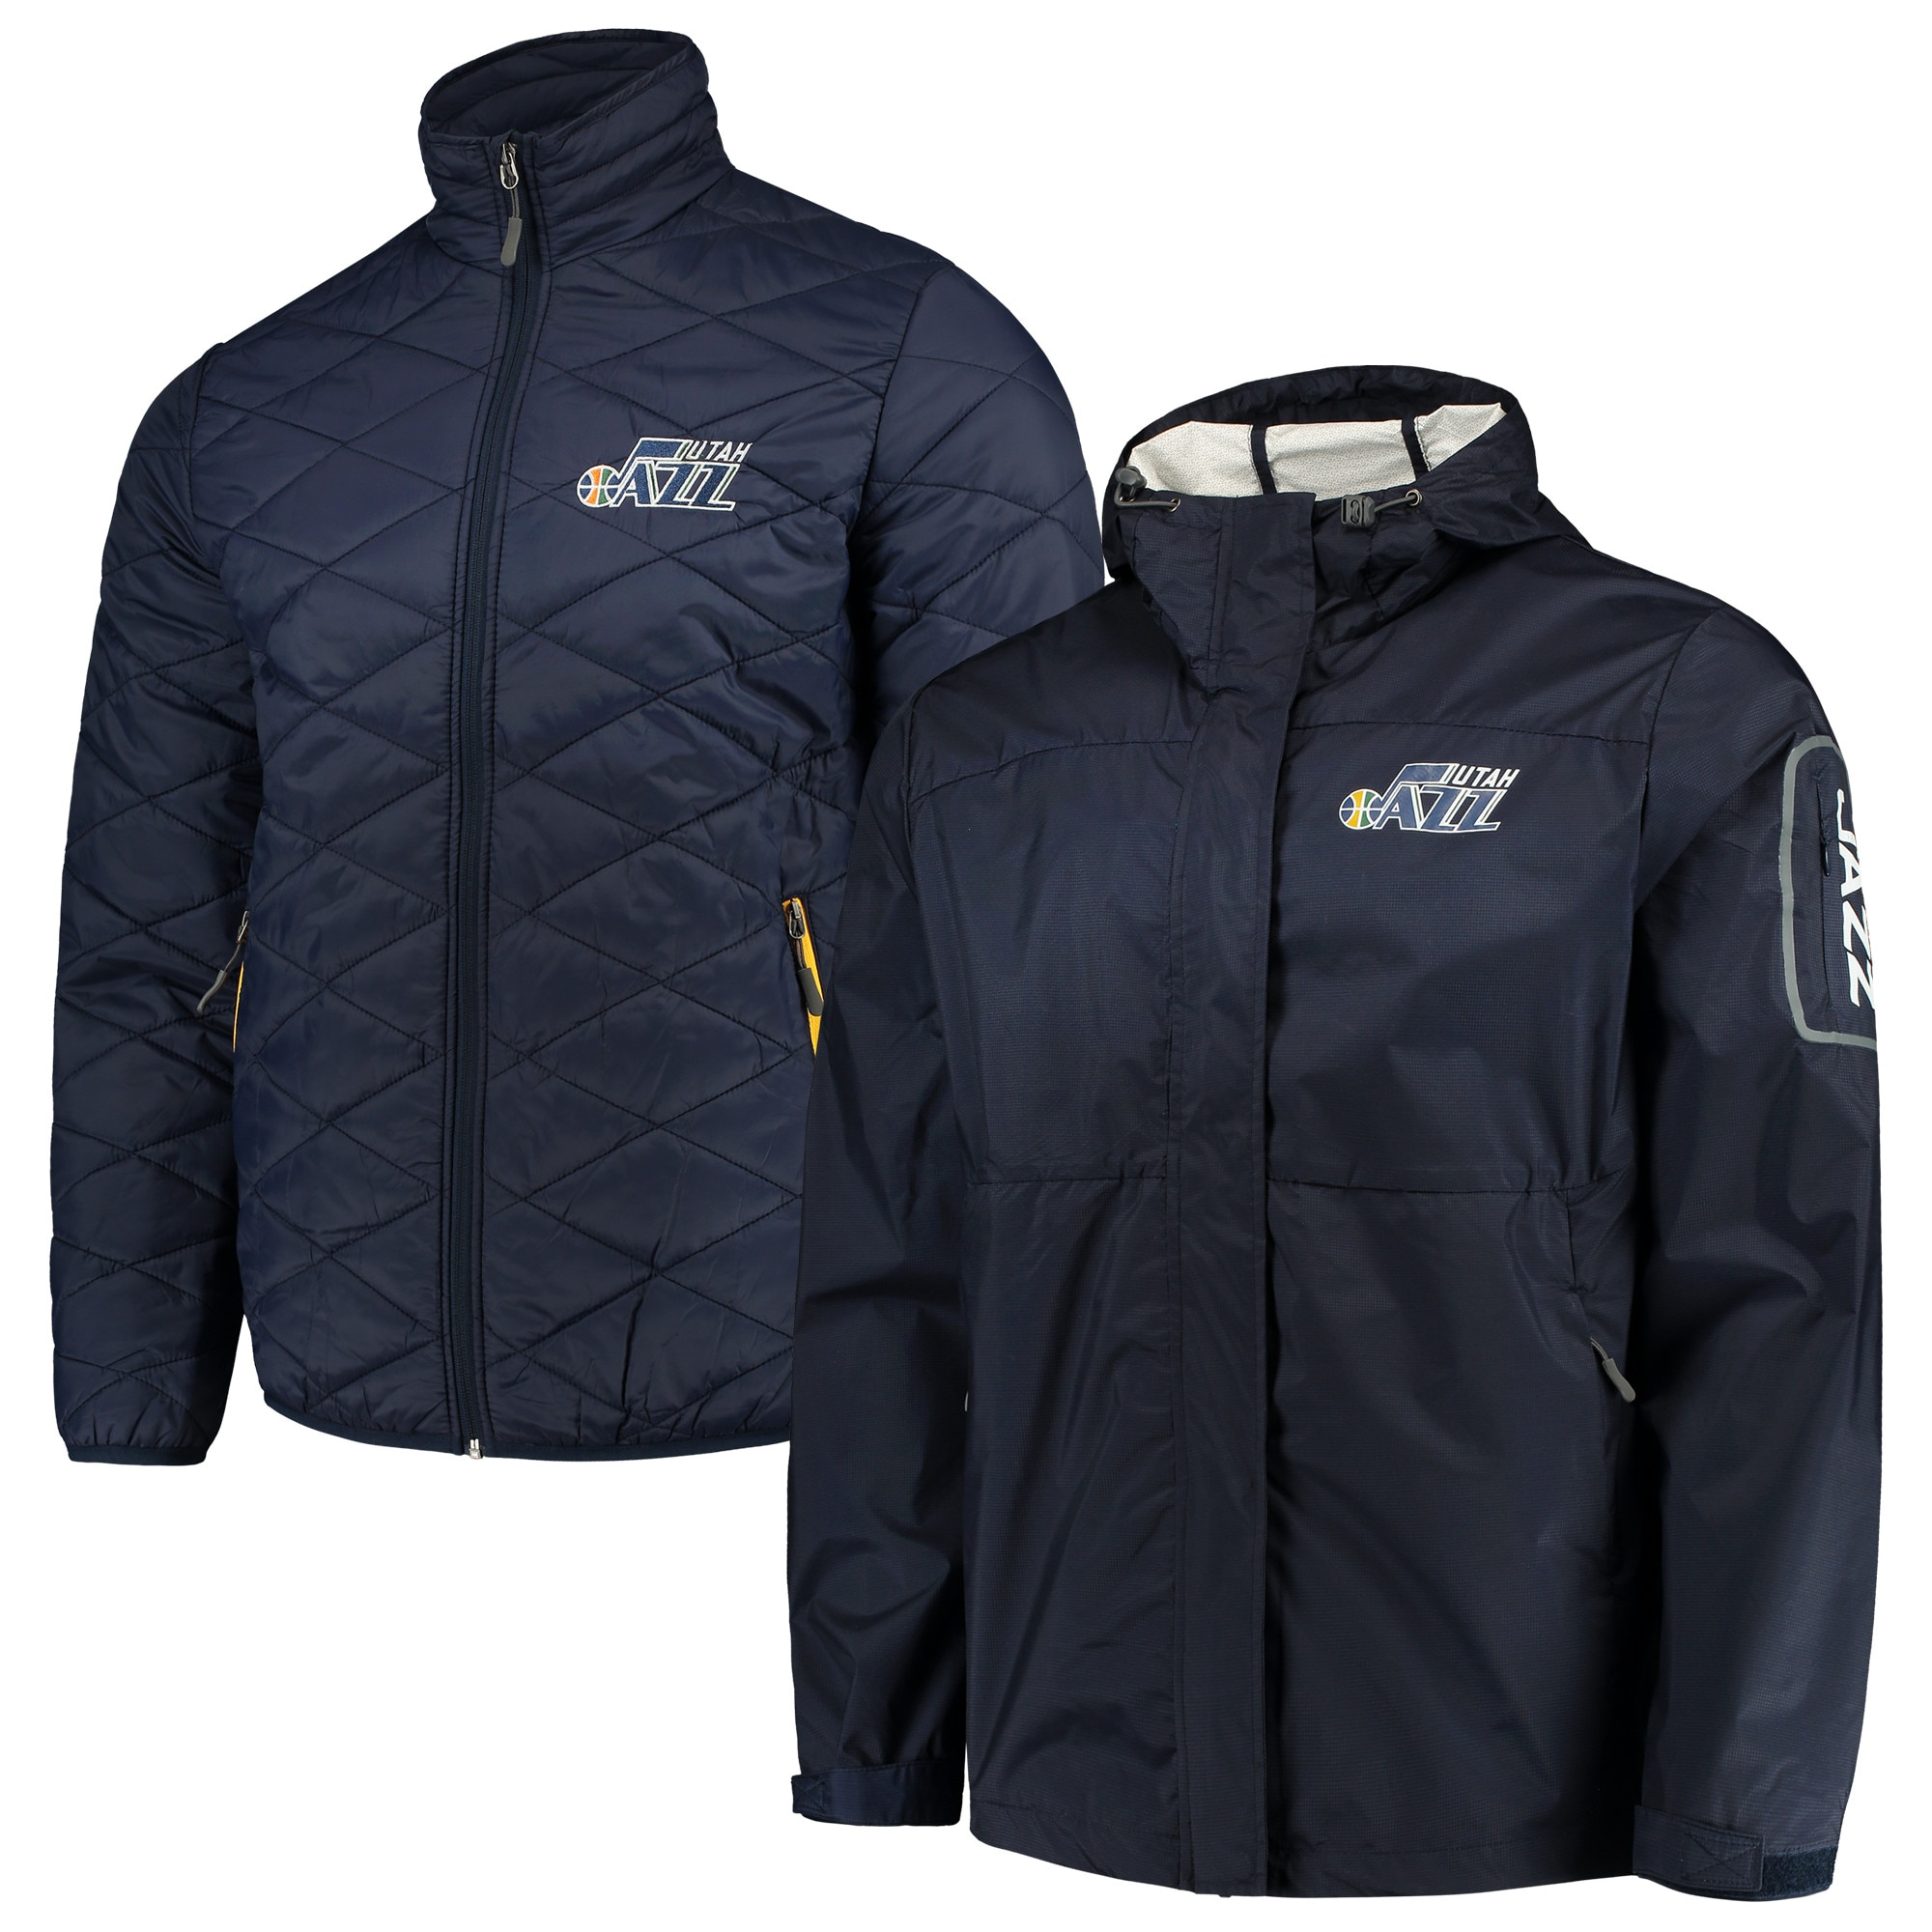 Utah Jazz G-III Sports by Carl Banks Acclimation 3-in-1 Systems Full-Zip Jacket - Navy